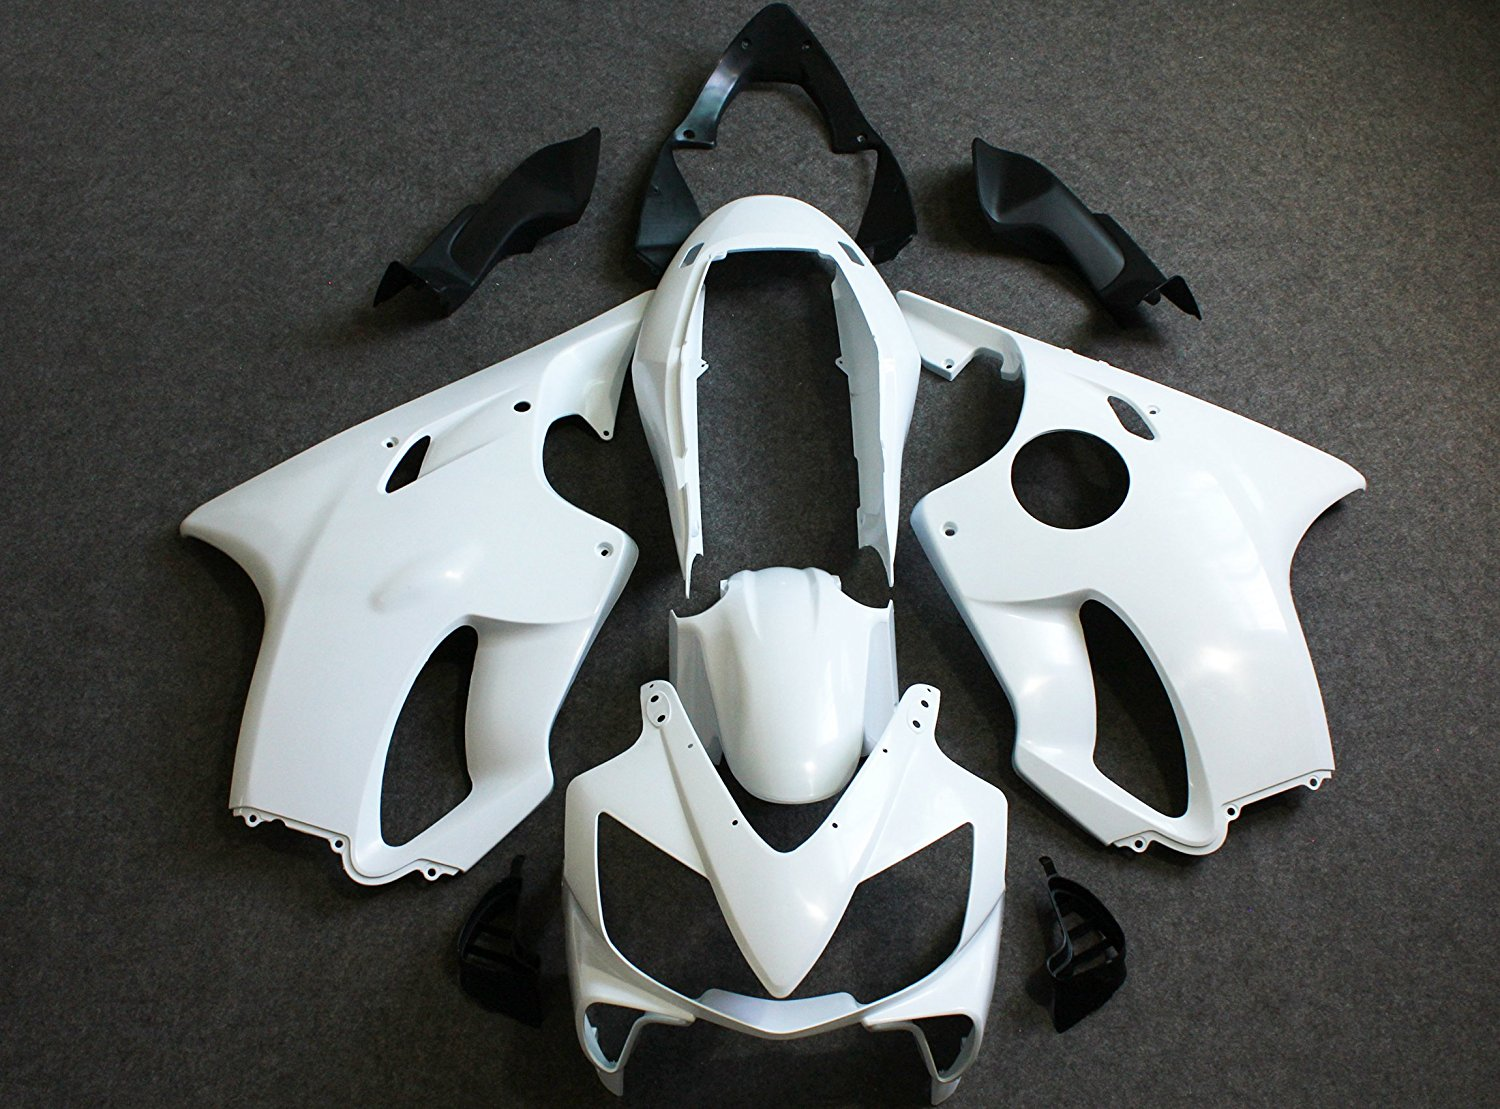 Motorcycle Injection Molding Unpainted Fairing Kit For Honda CBR 600 RR F4i  2004-2007 2005 2006 unpainted tail fairing kit rear for honda cbr600rr cbr 600 rr 2003 2004 cbr600 cbr 600rr 03 04 motorcycle frame injection mold